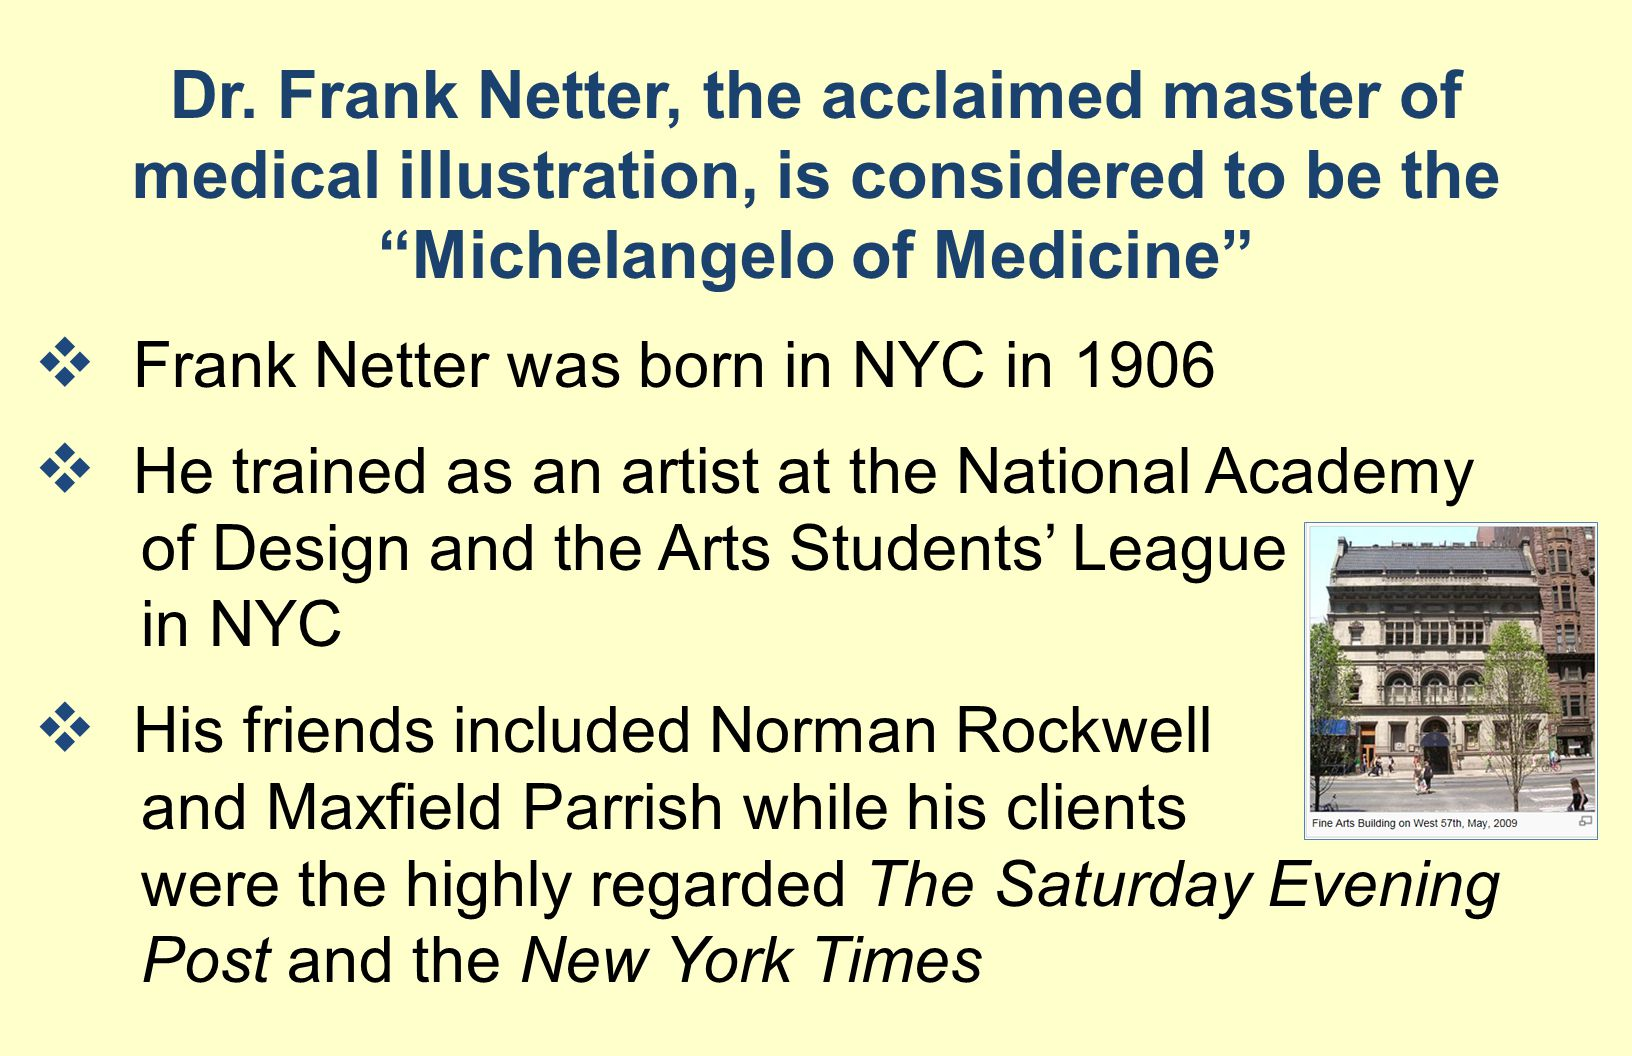 Dr. Frank Netter, the acclaimed master of